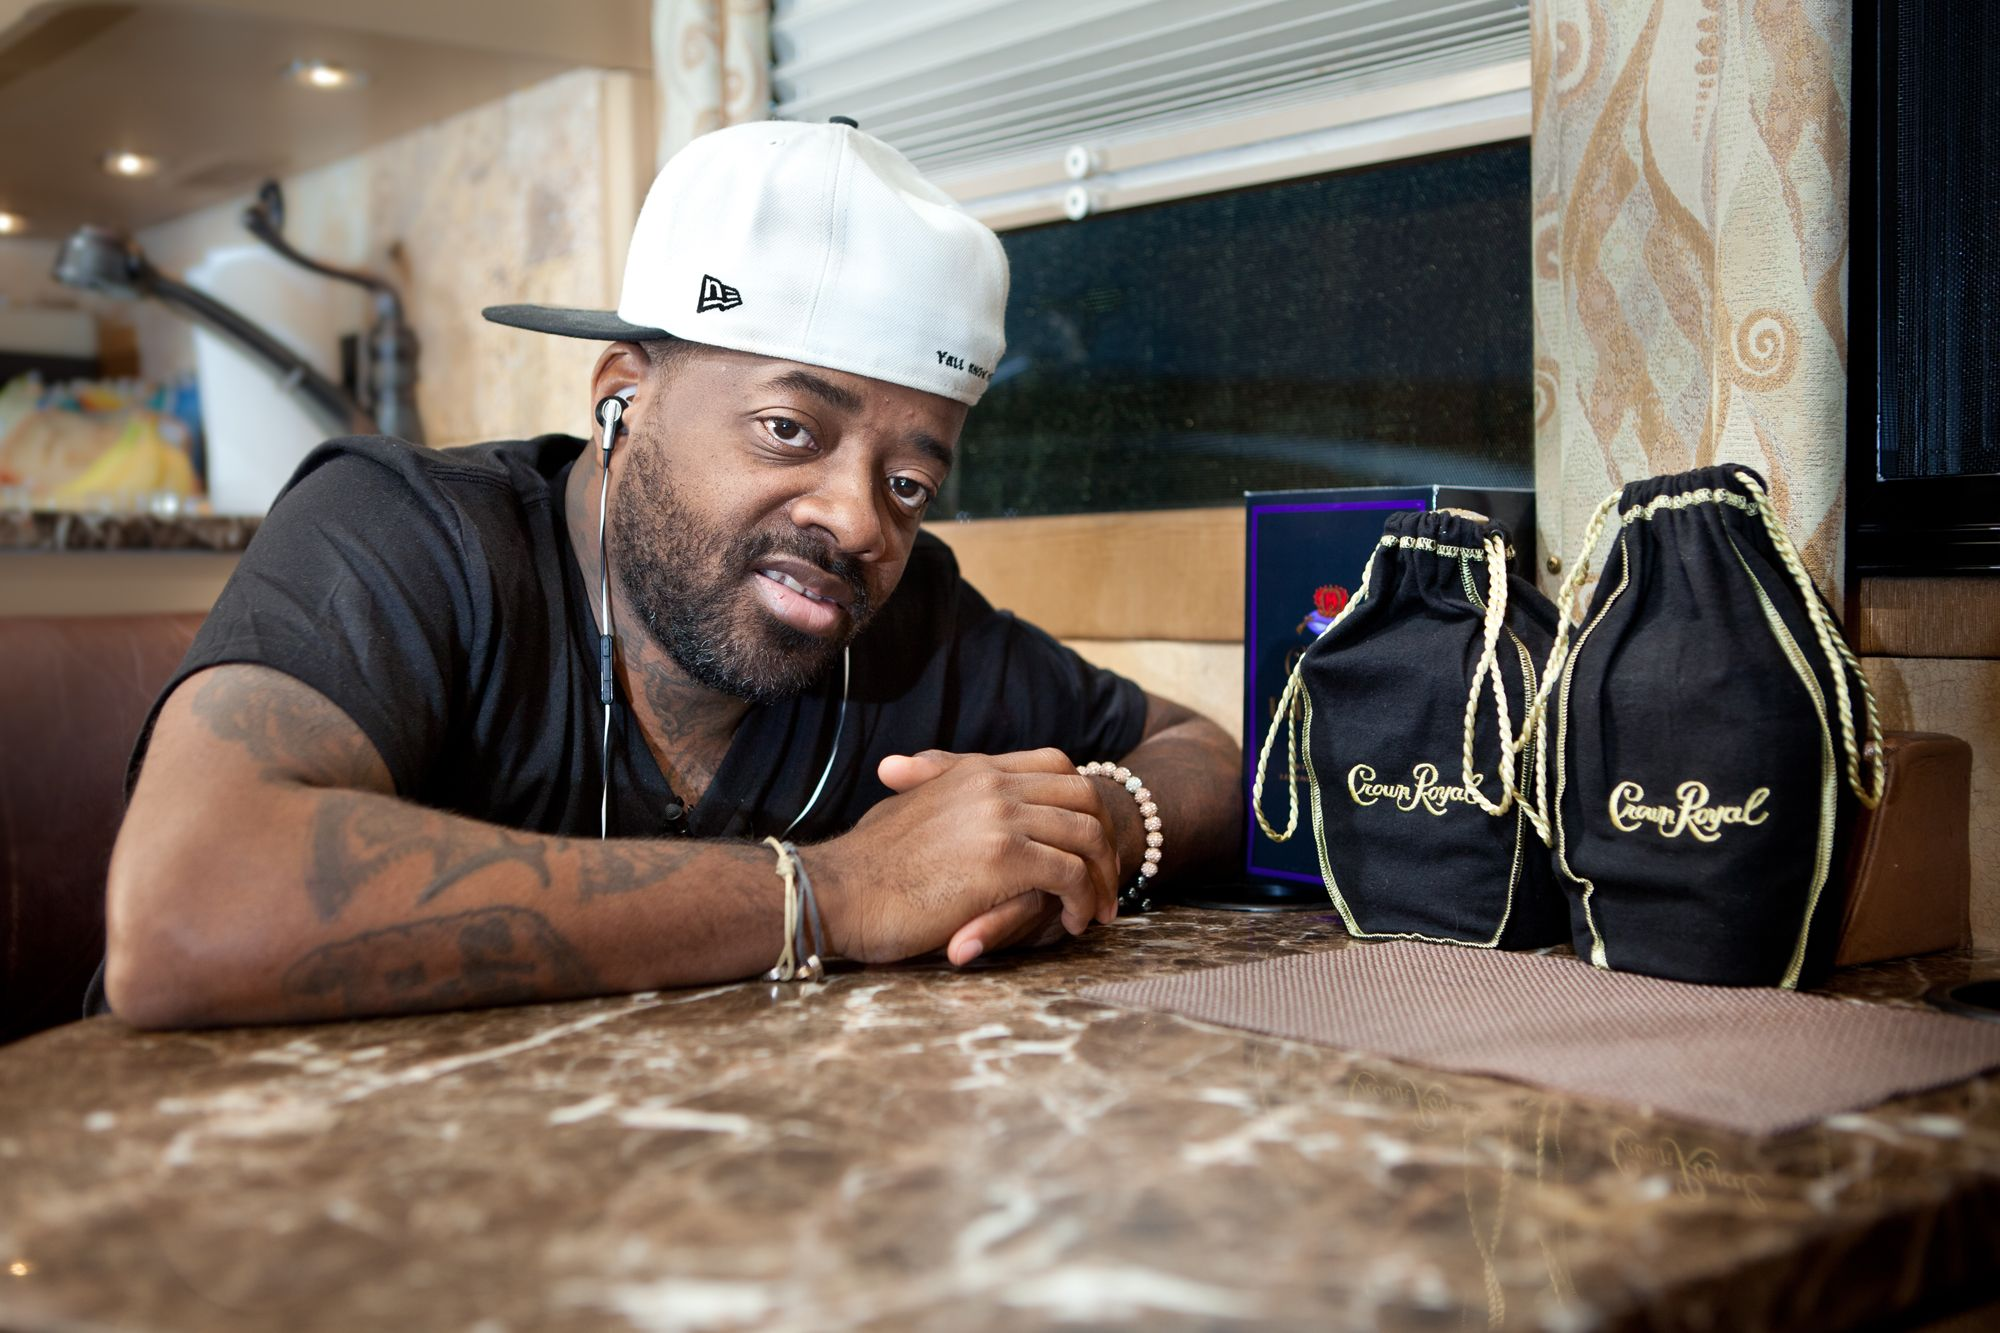 """People Running The Music Business R No Longer Making Music"" Agree With Jermaine Dupri?"